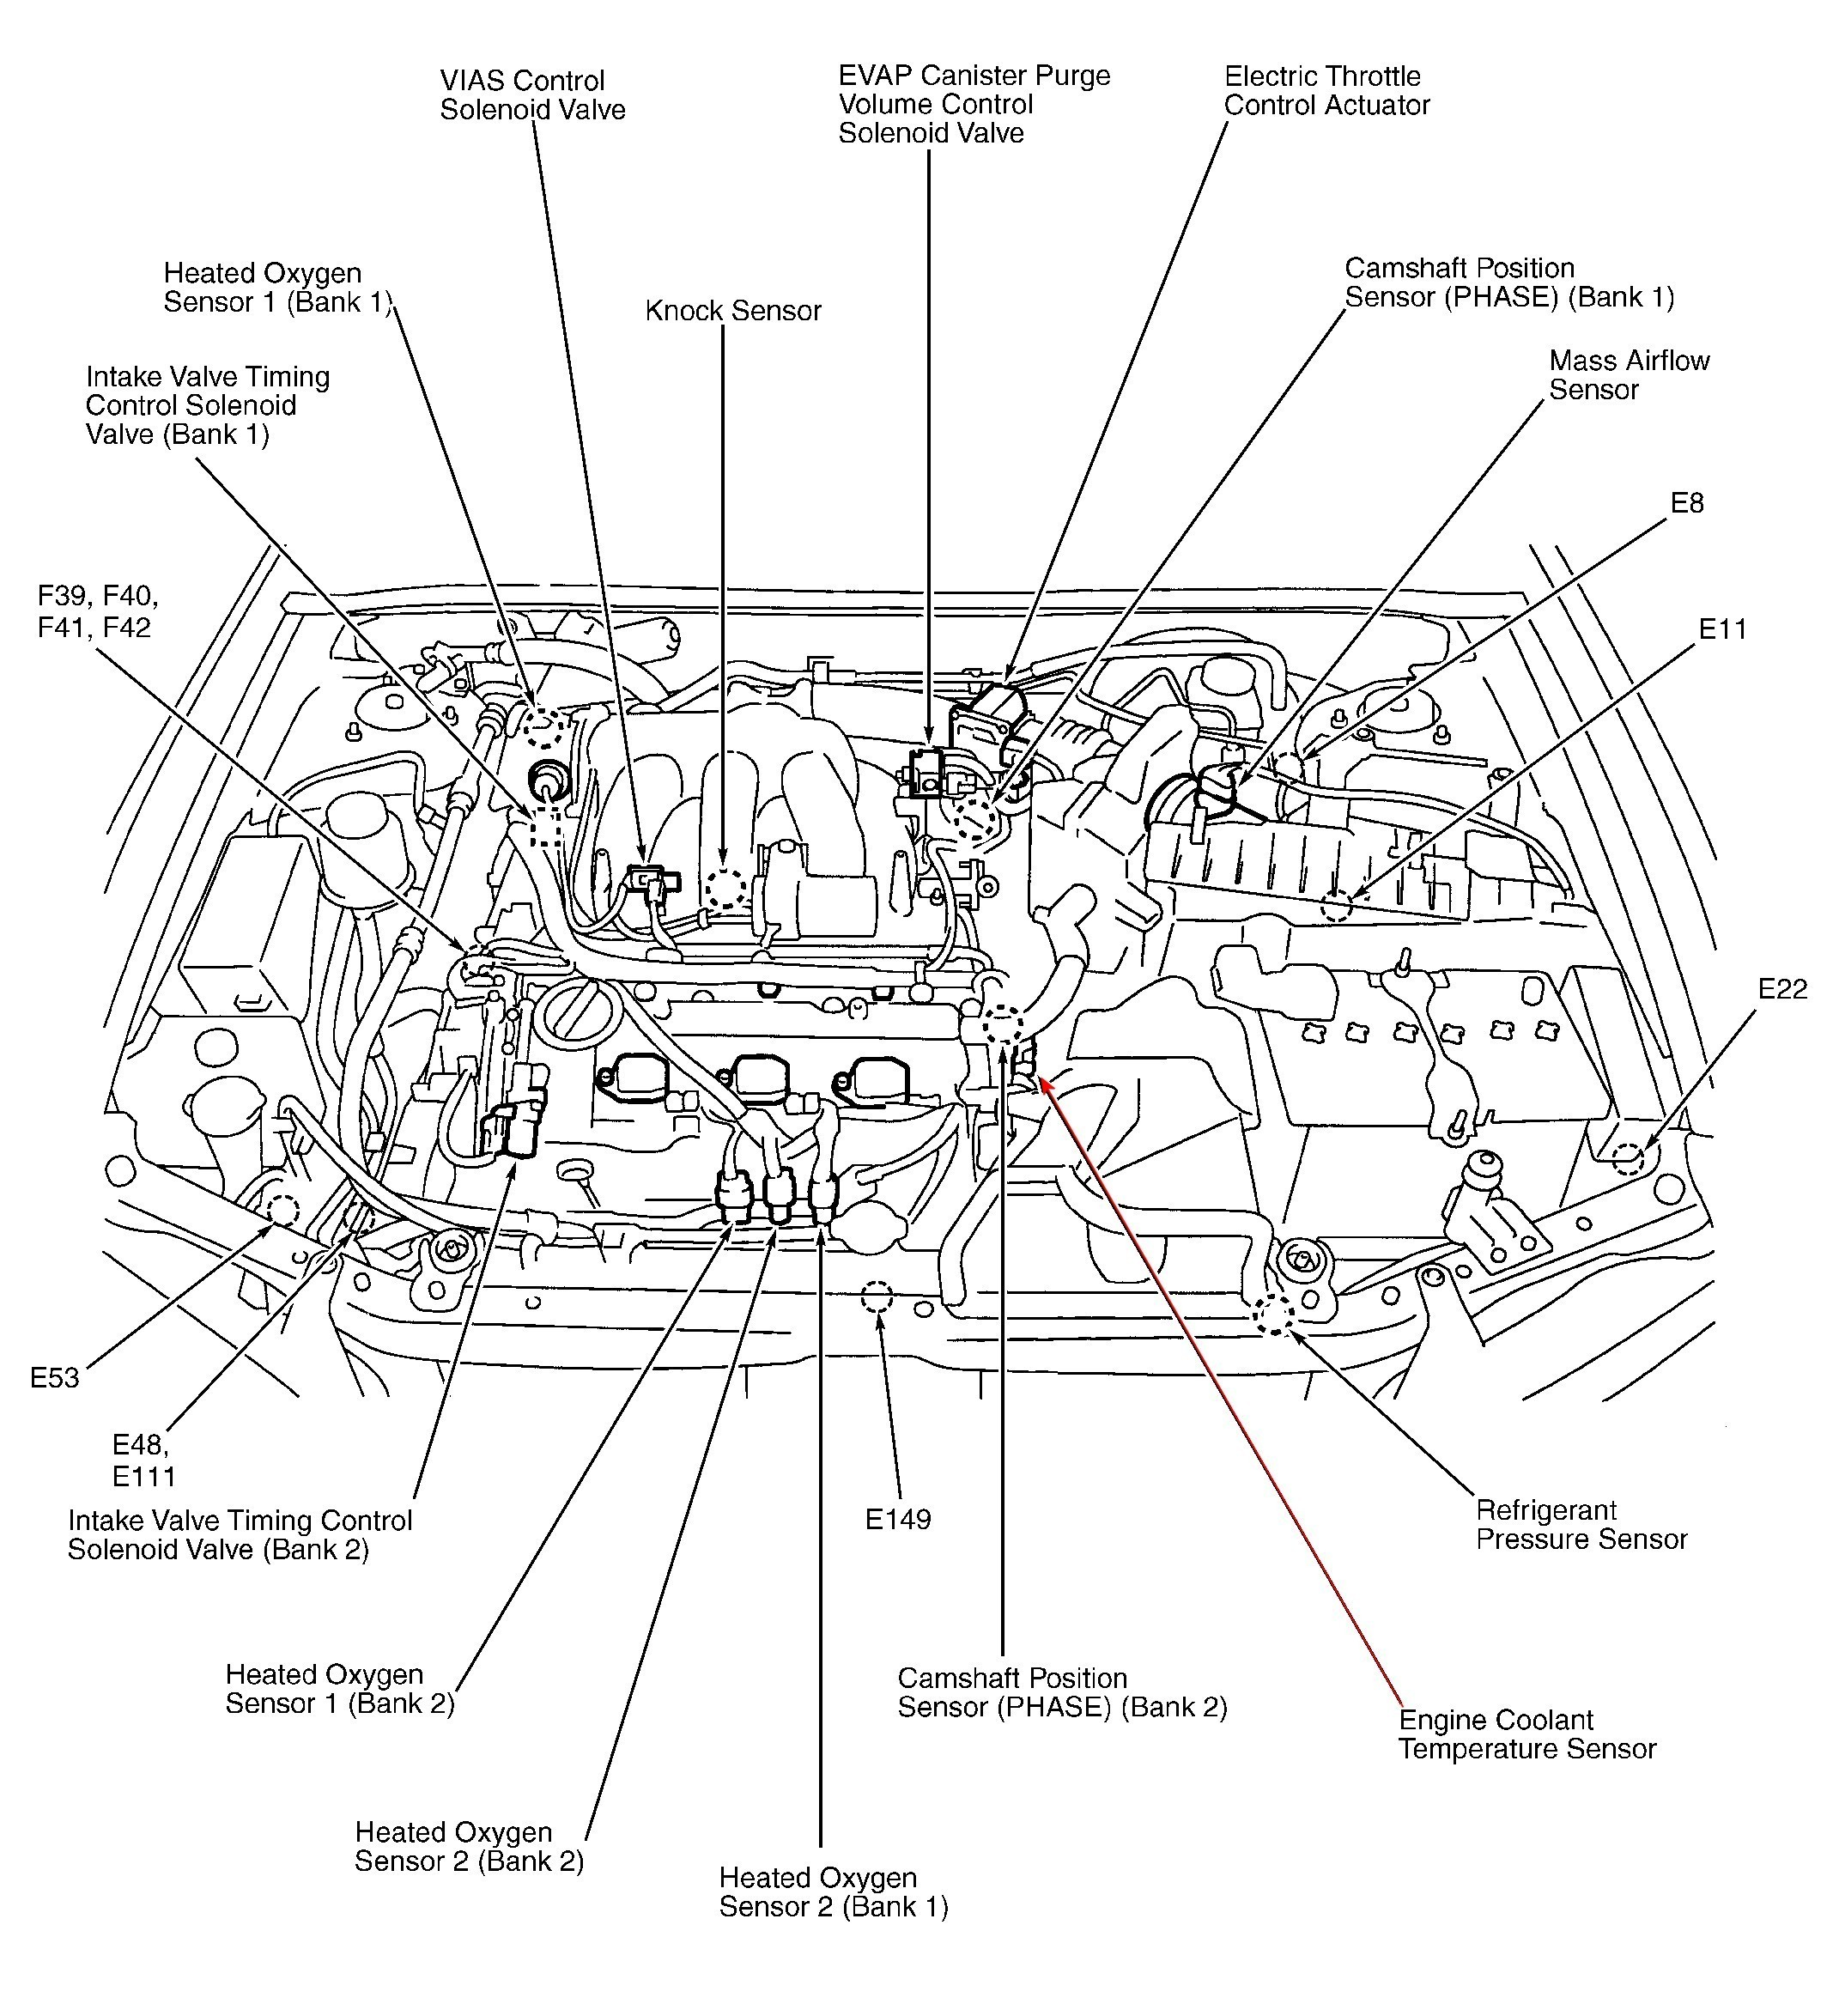 2007 Suzuki forenza Engine Diagram Take A Look About 2005 Suzuki forenza with Amazing Of 2007 Suzuki forenza Engine Diagram How to Tell if A Timing Belt Tensioner is Bad 6 Steps